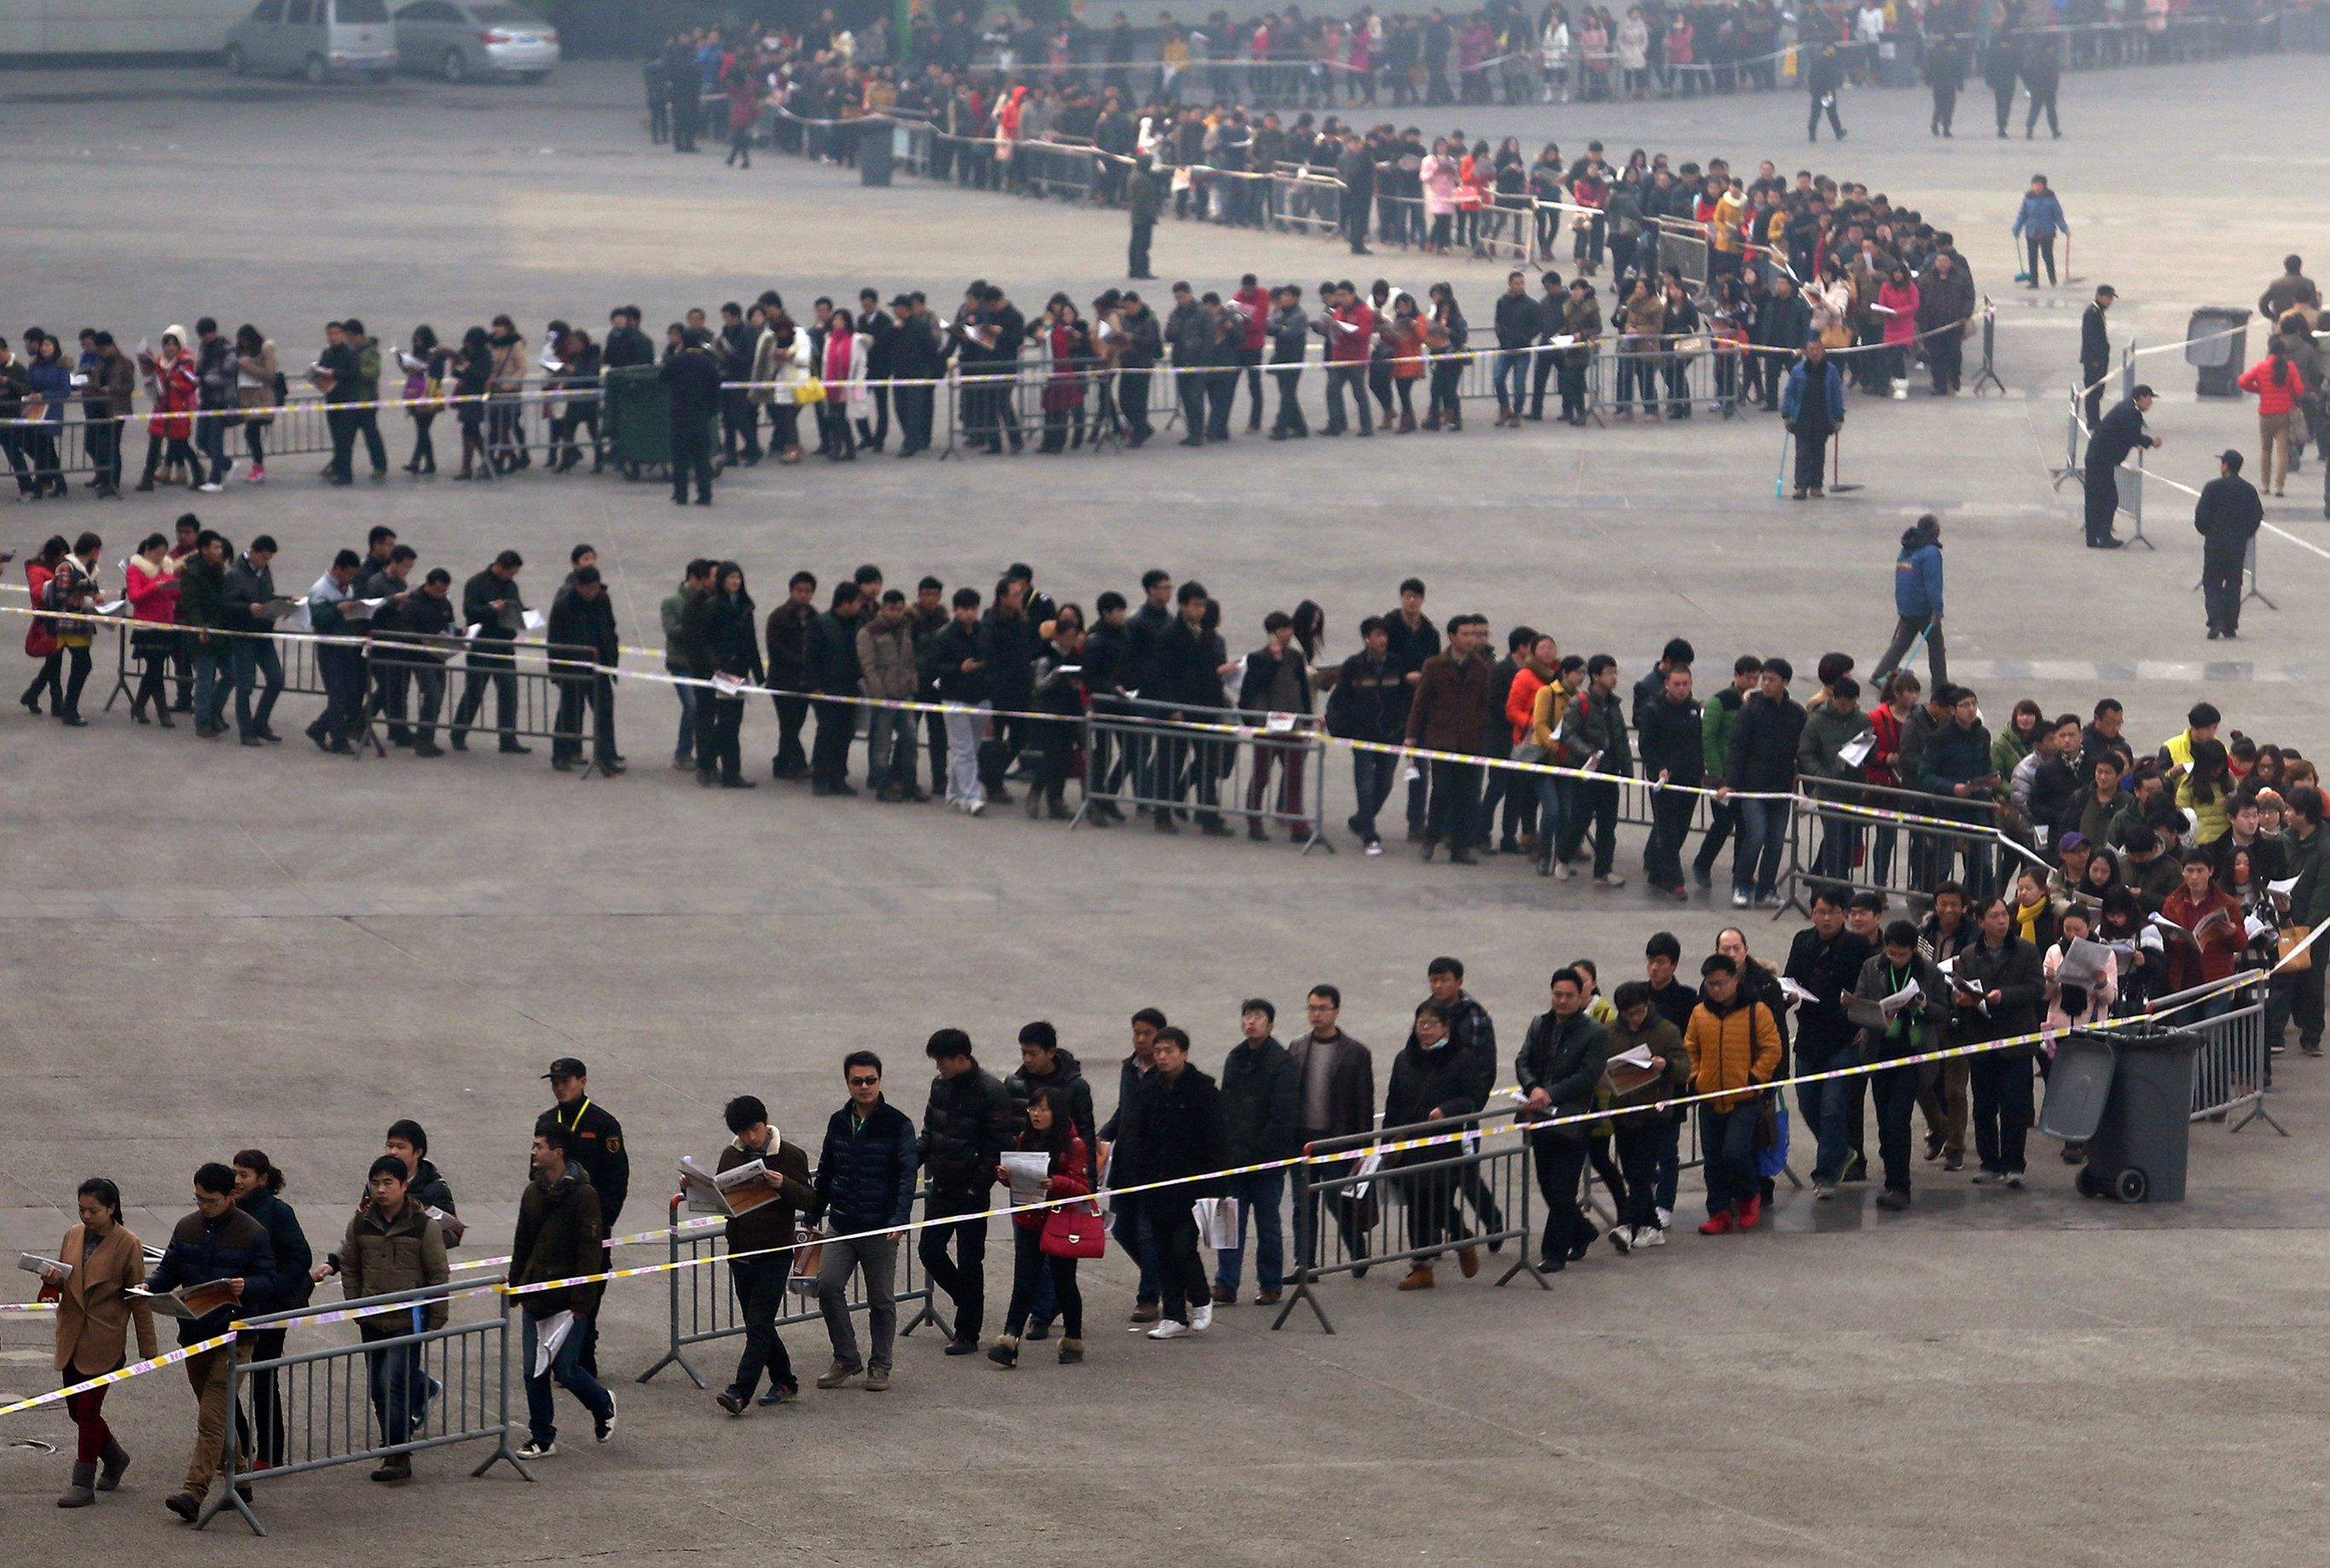 23 Shocking Photos That Show Just How Crowded China Has Become